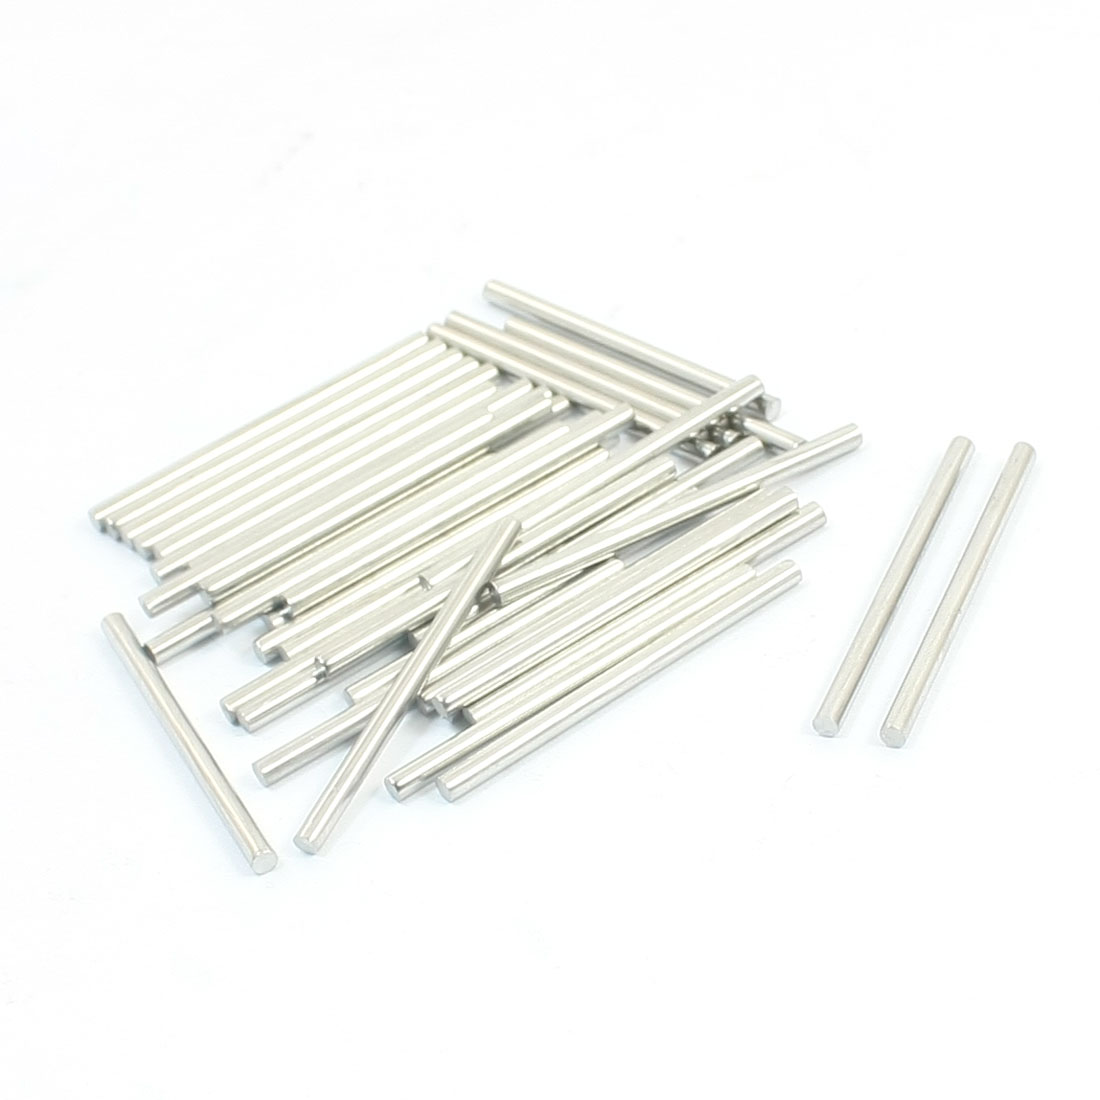 40pcs RC Airplane Toys Spare Parts Stainless Steel Round Bar 40x2.5mm